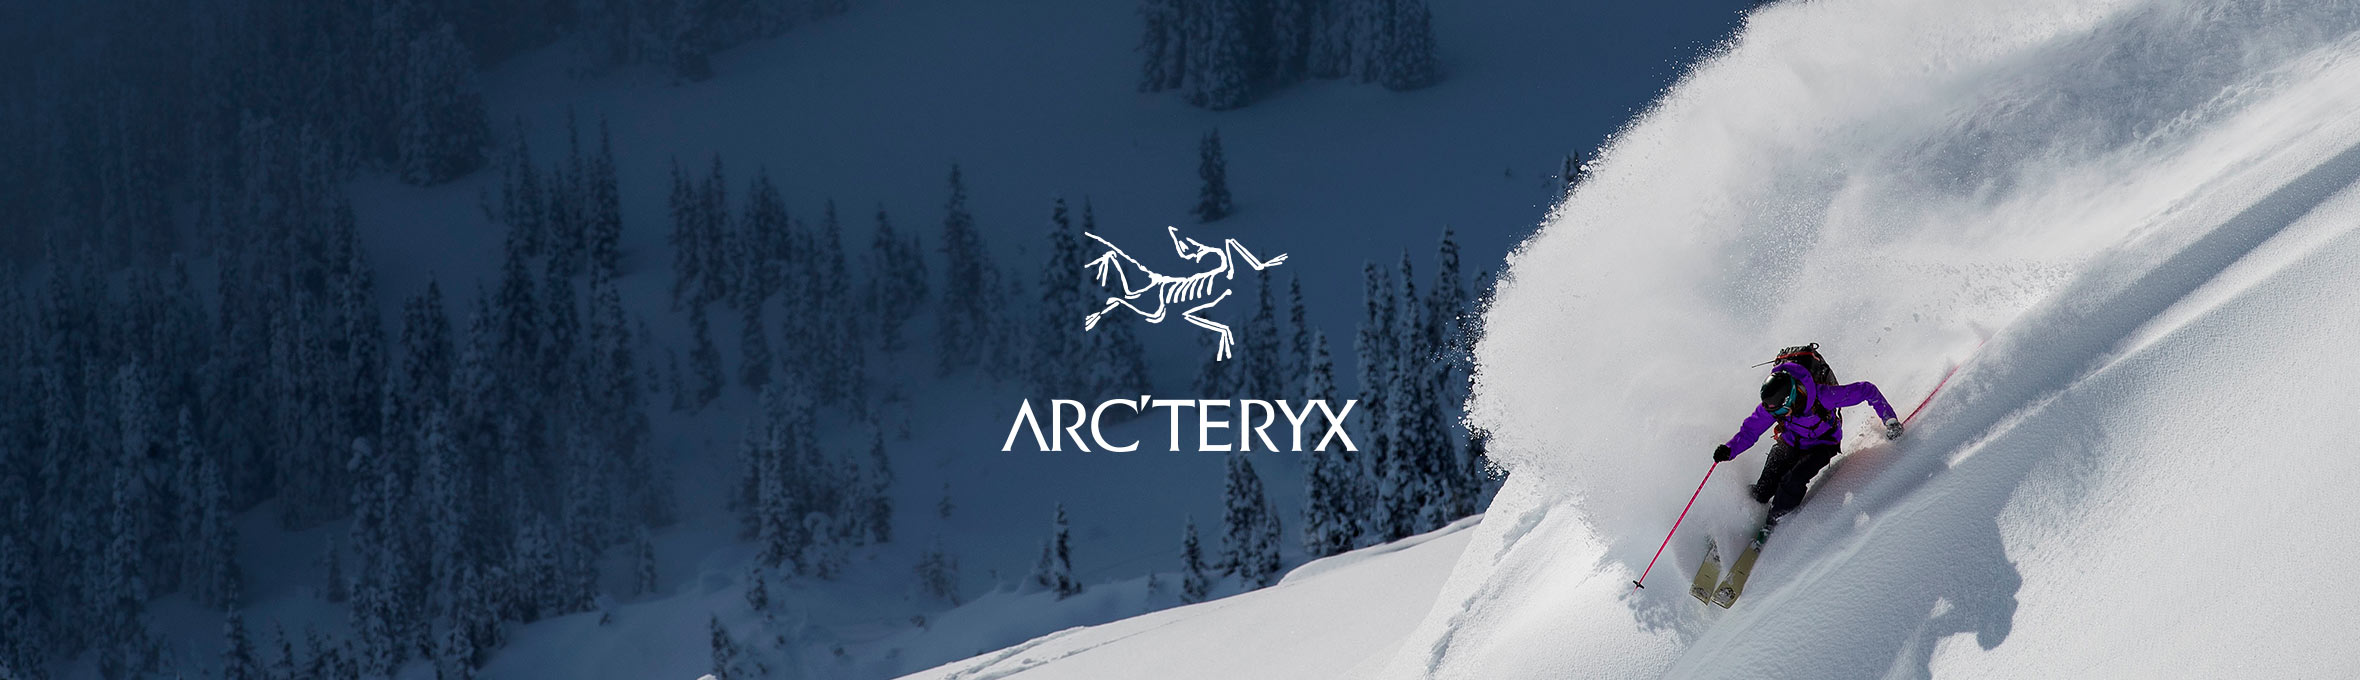 Arc'teryx | Collection Automne-Hiver 2017